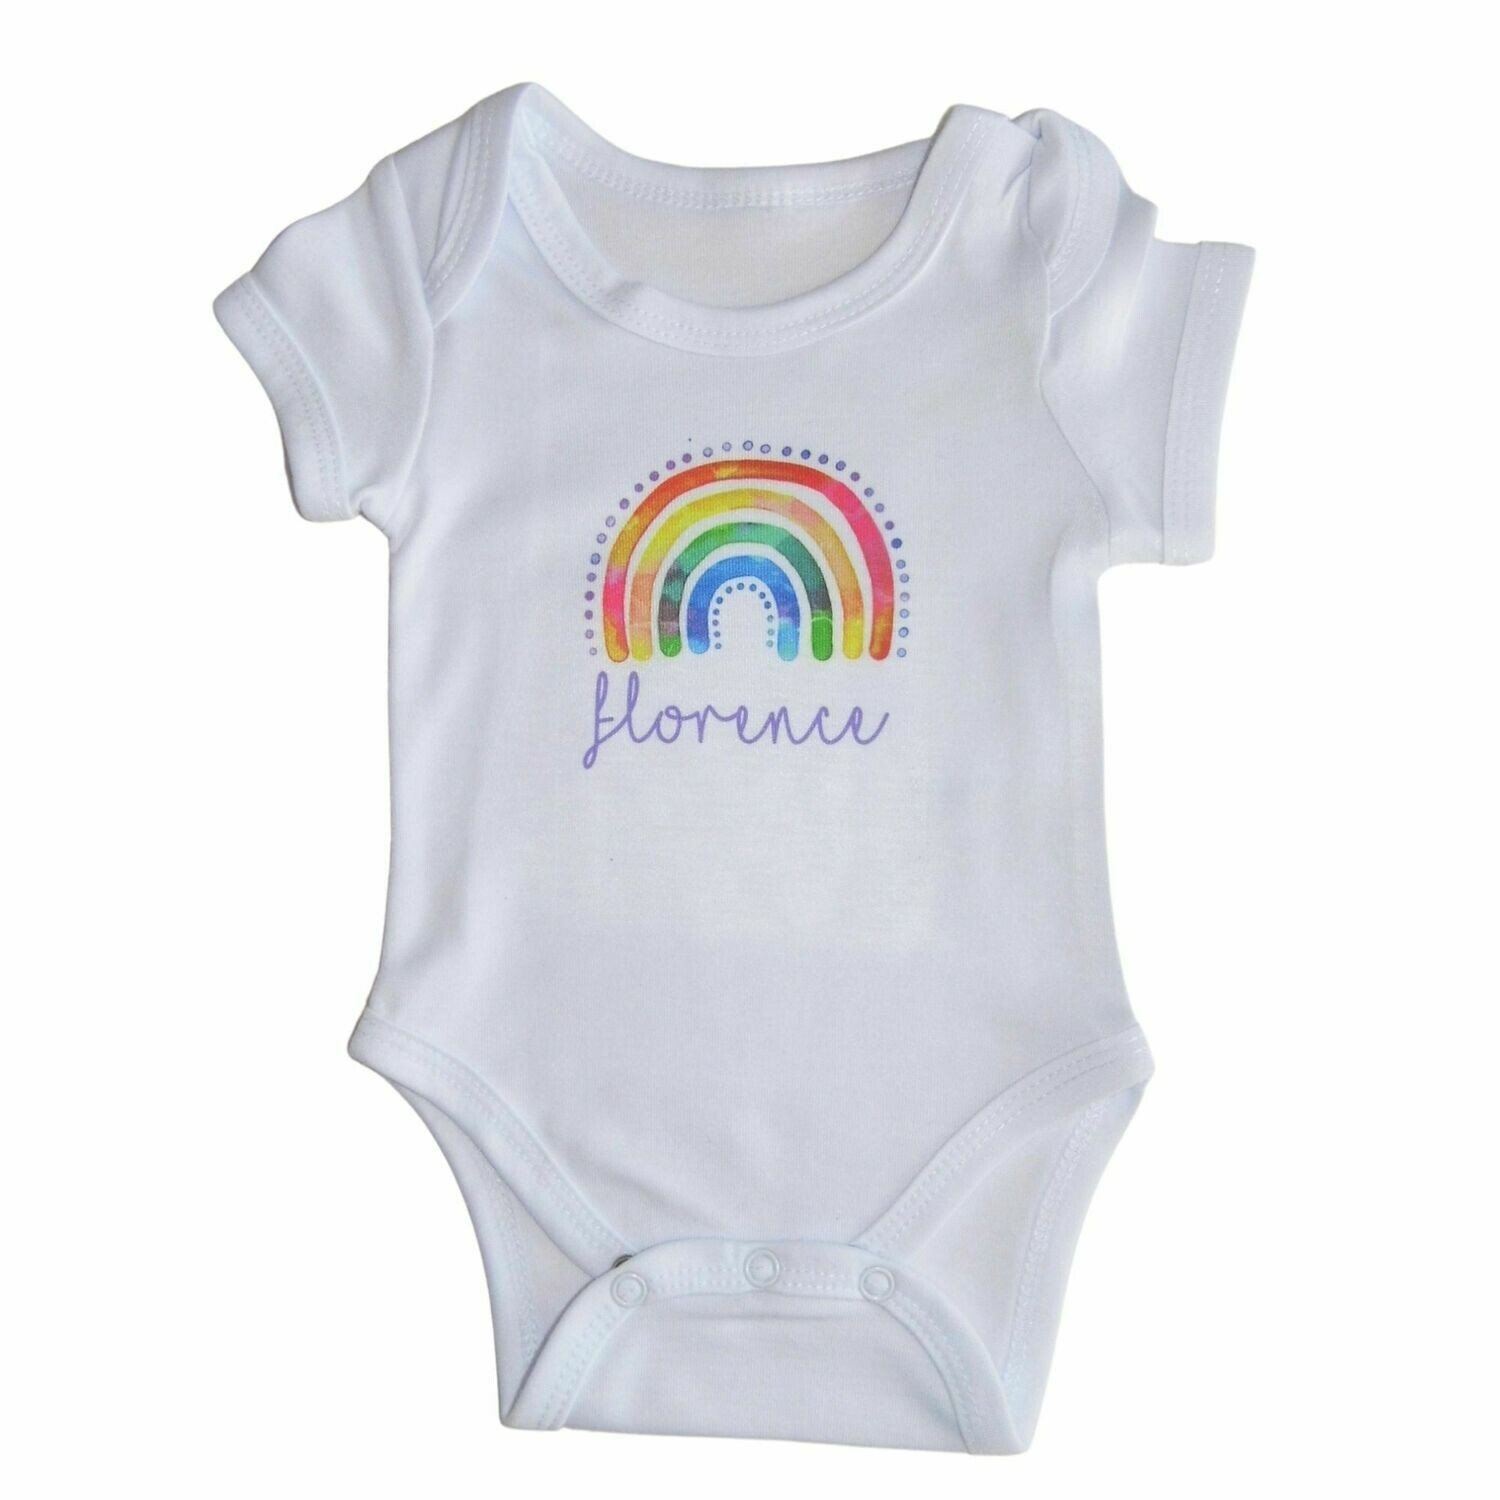 Personalised Rainbow Baby Grow with Name